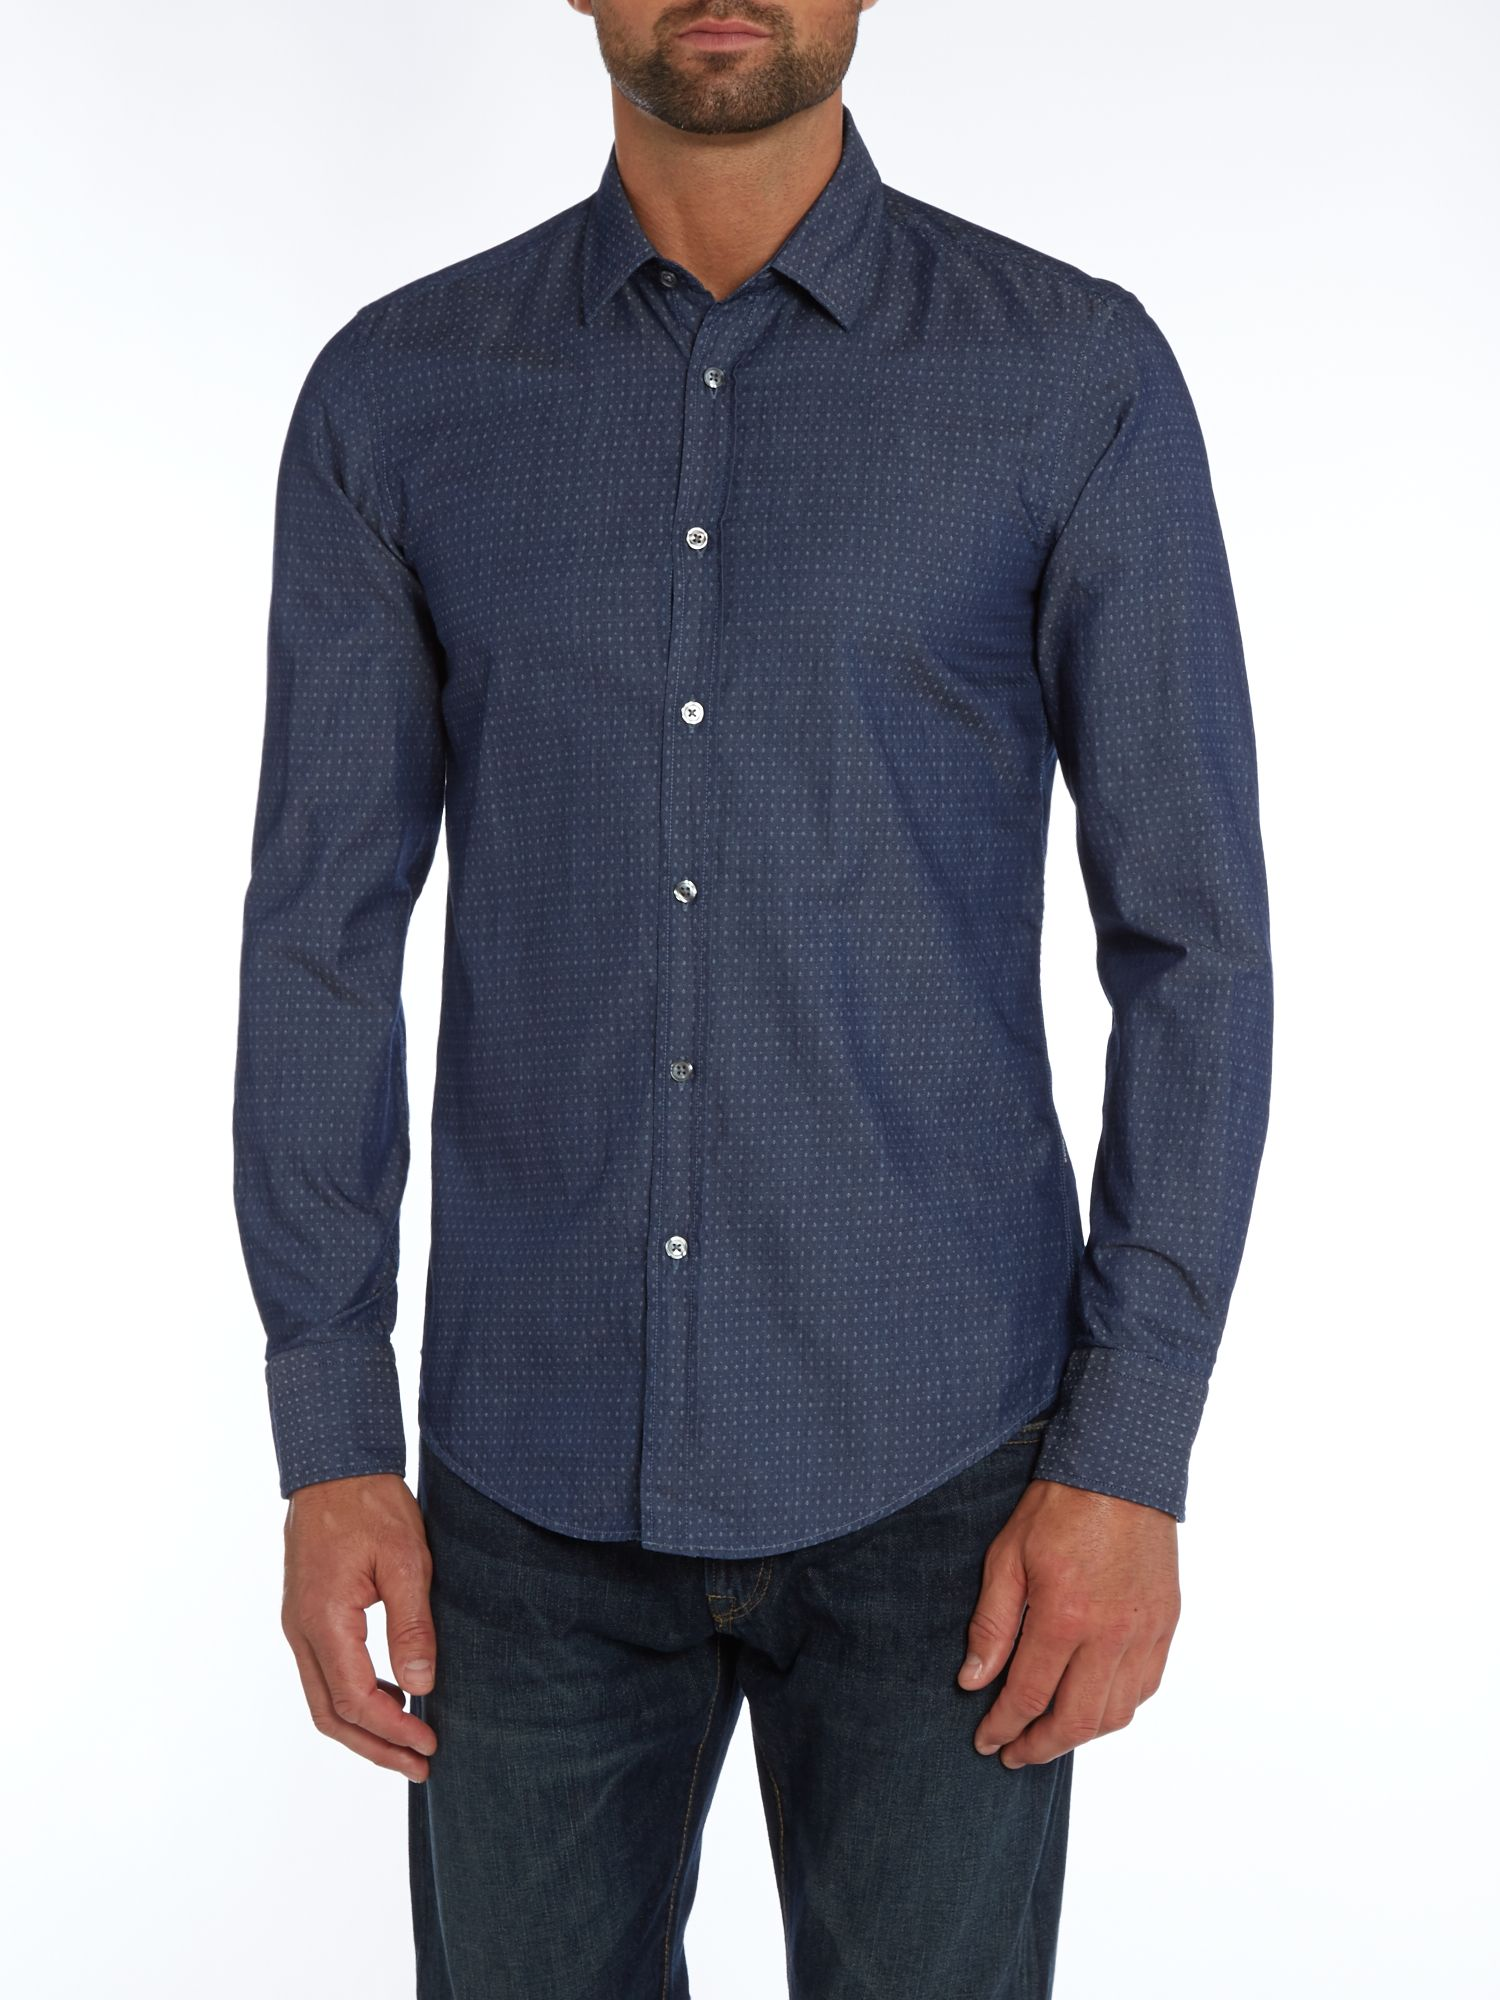 Denim jacquard shirt